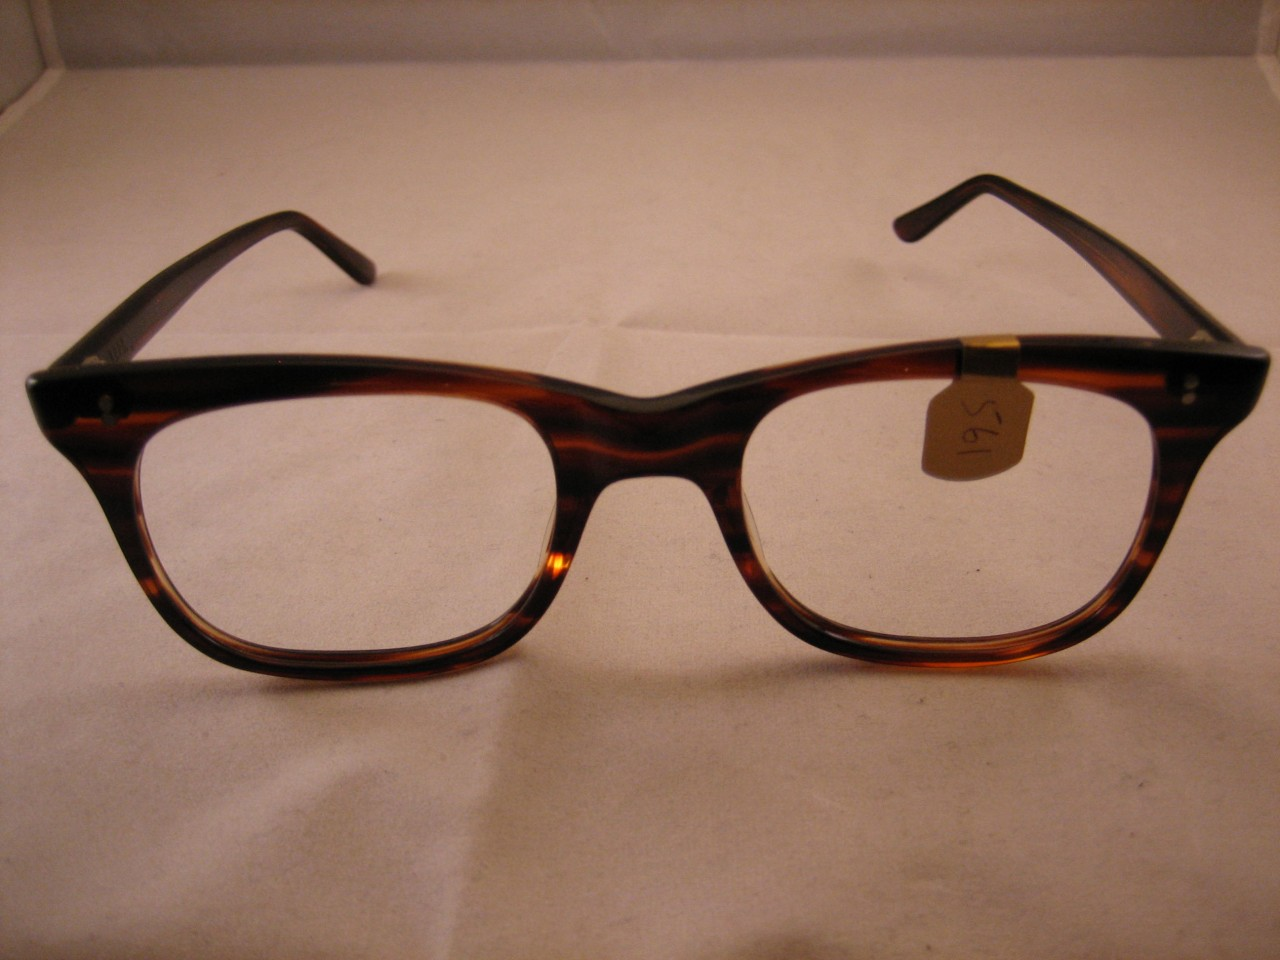 688c3d022409 Ebay Uk Vintage Glasses Frames